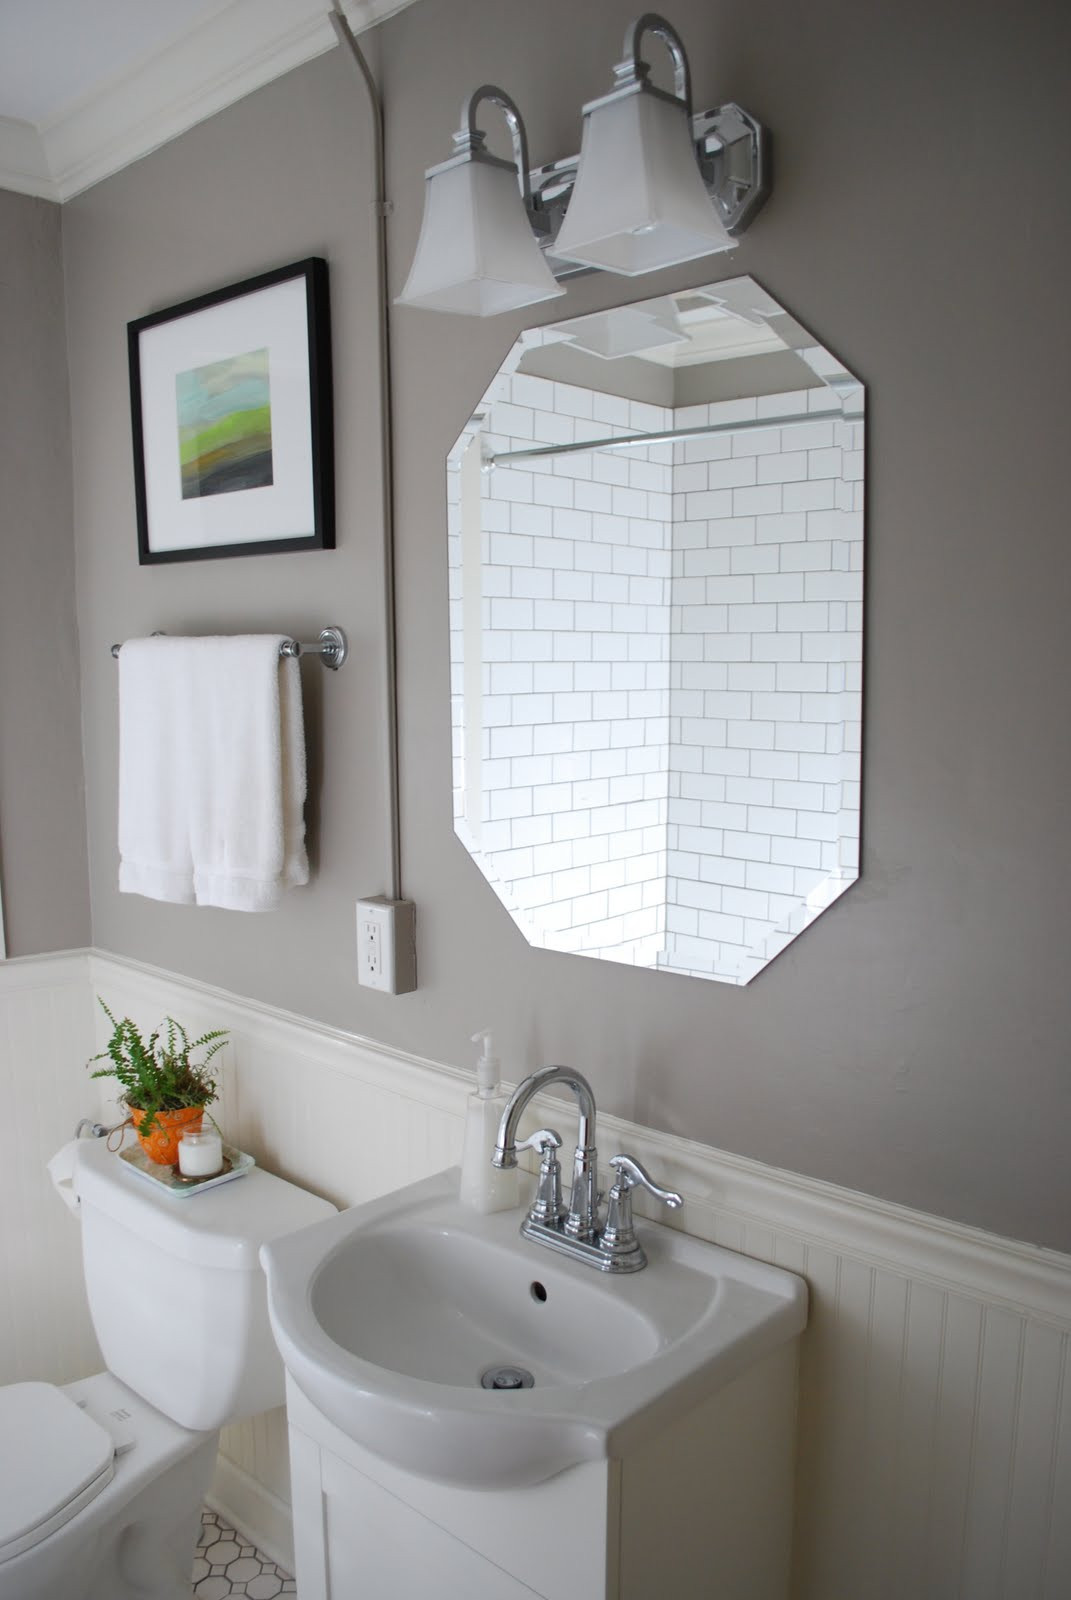 Best ideas about Beadboard In Bathroom . Save or Pin Future House Design Bathroom Beadboard Design Now.